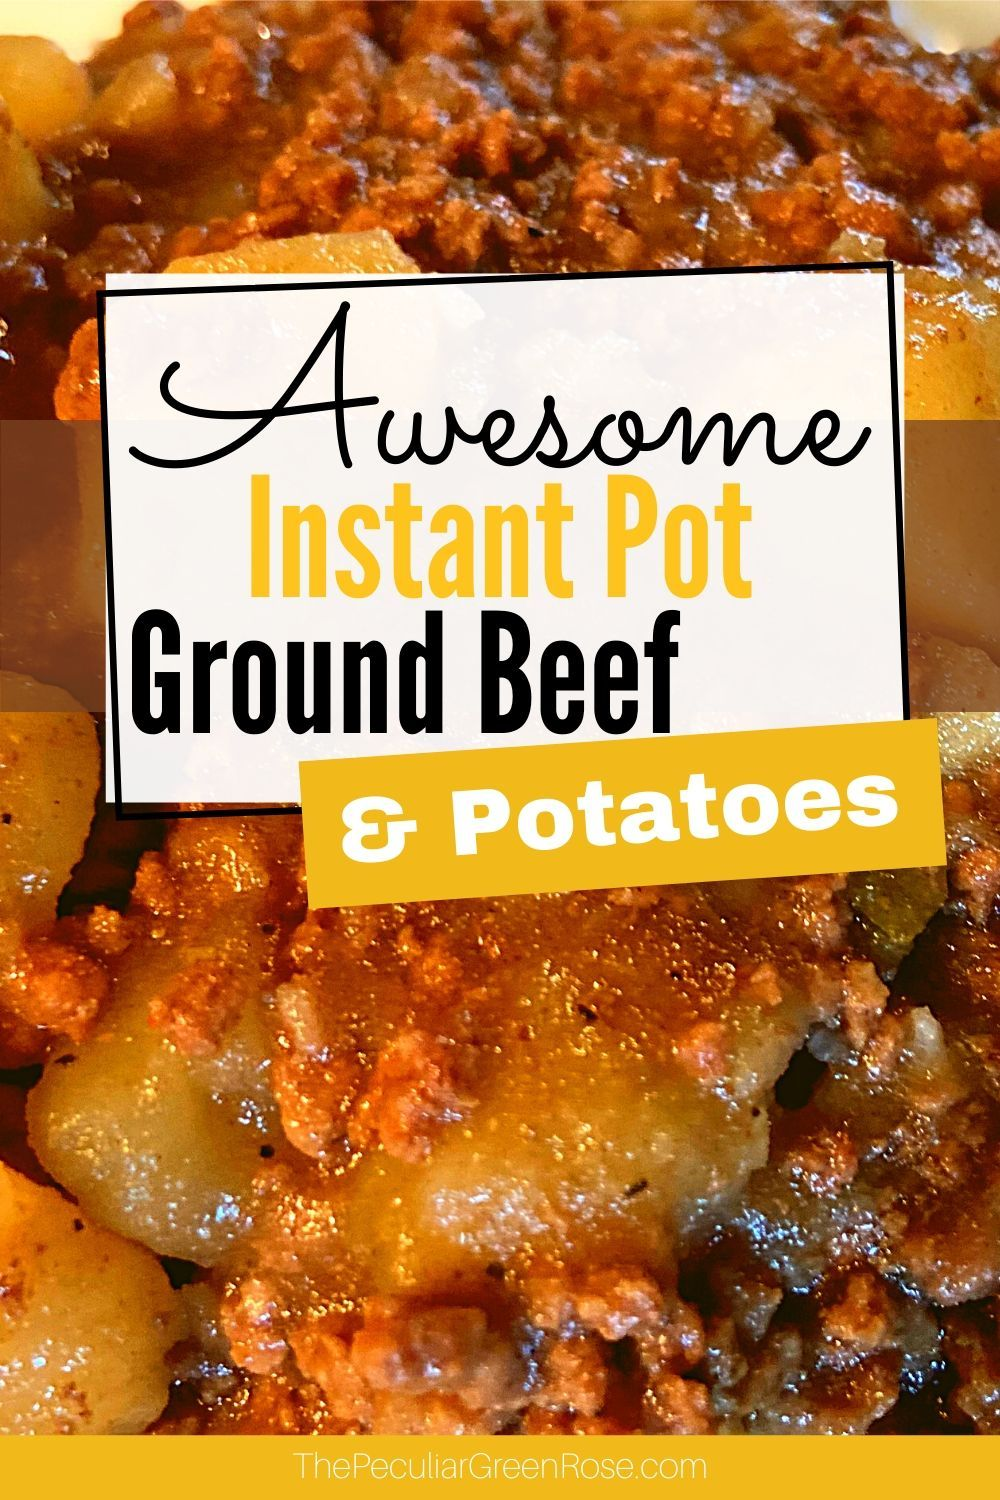 Instant Pot Ground Beef And Potatoes The Peculiar Green Rose Recipe In 2020 Ground Beef And Potatoes Easy Instant Pot Recipes Quick Beef Recipes